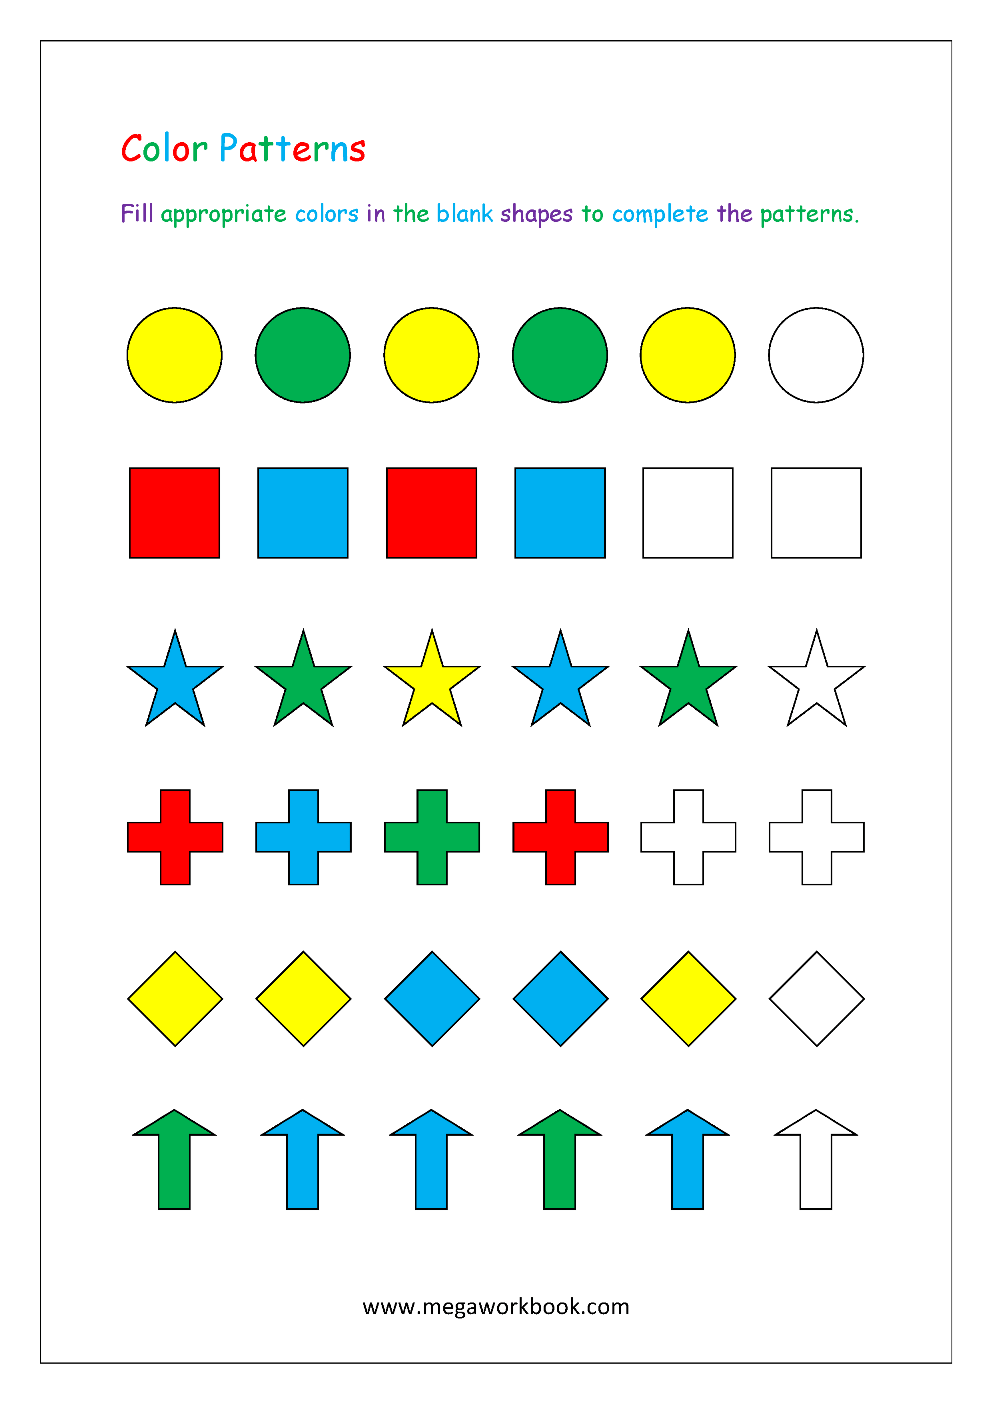 hight resolution of Pattern Worksheets For Kindergarten - Color Patterns - Growing Patterns -  Decreasing Patterns - Repeating Patterns Worksheets - AB